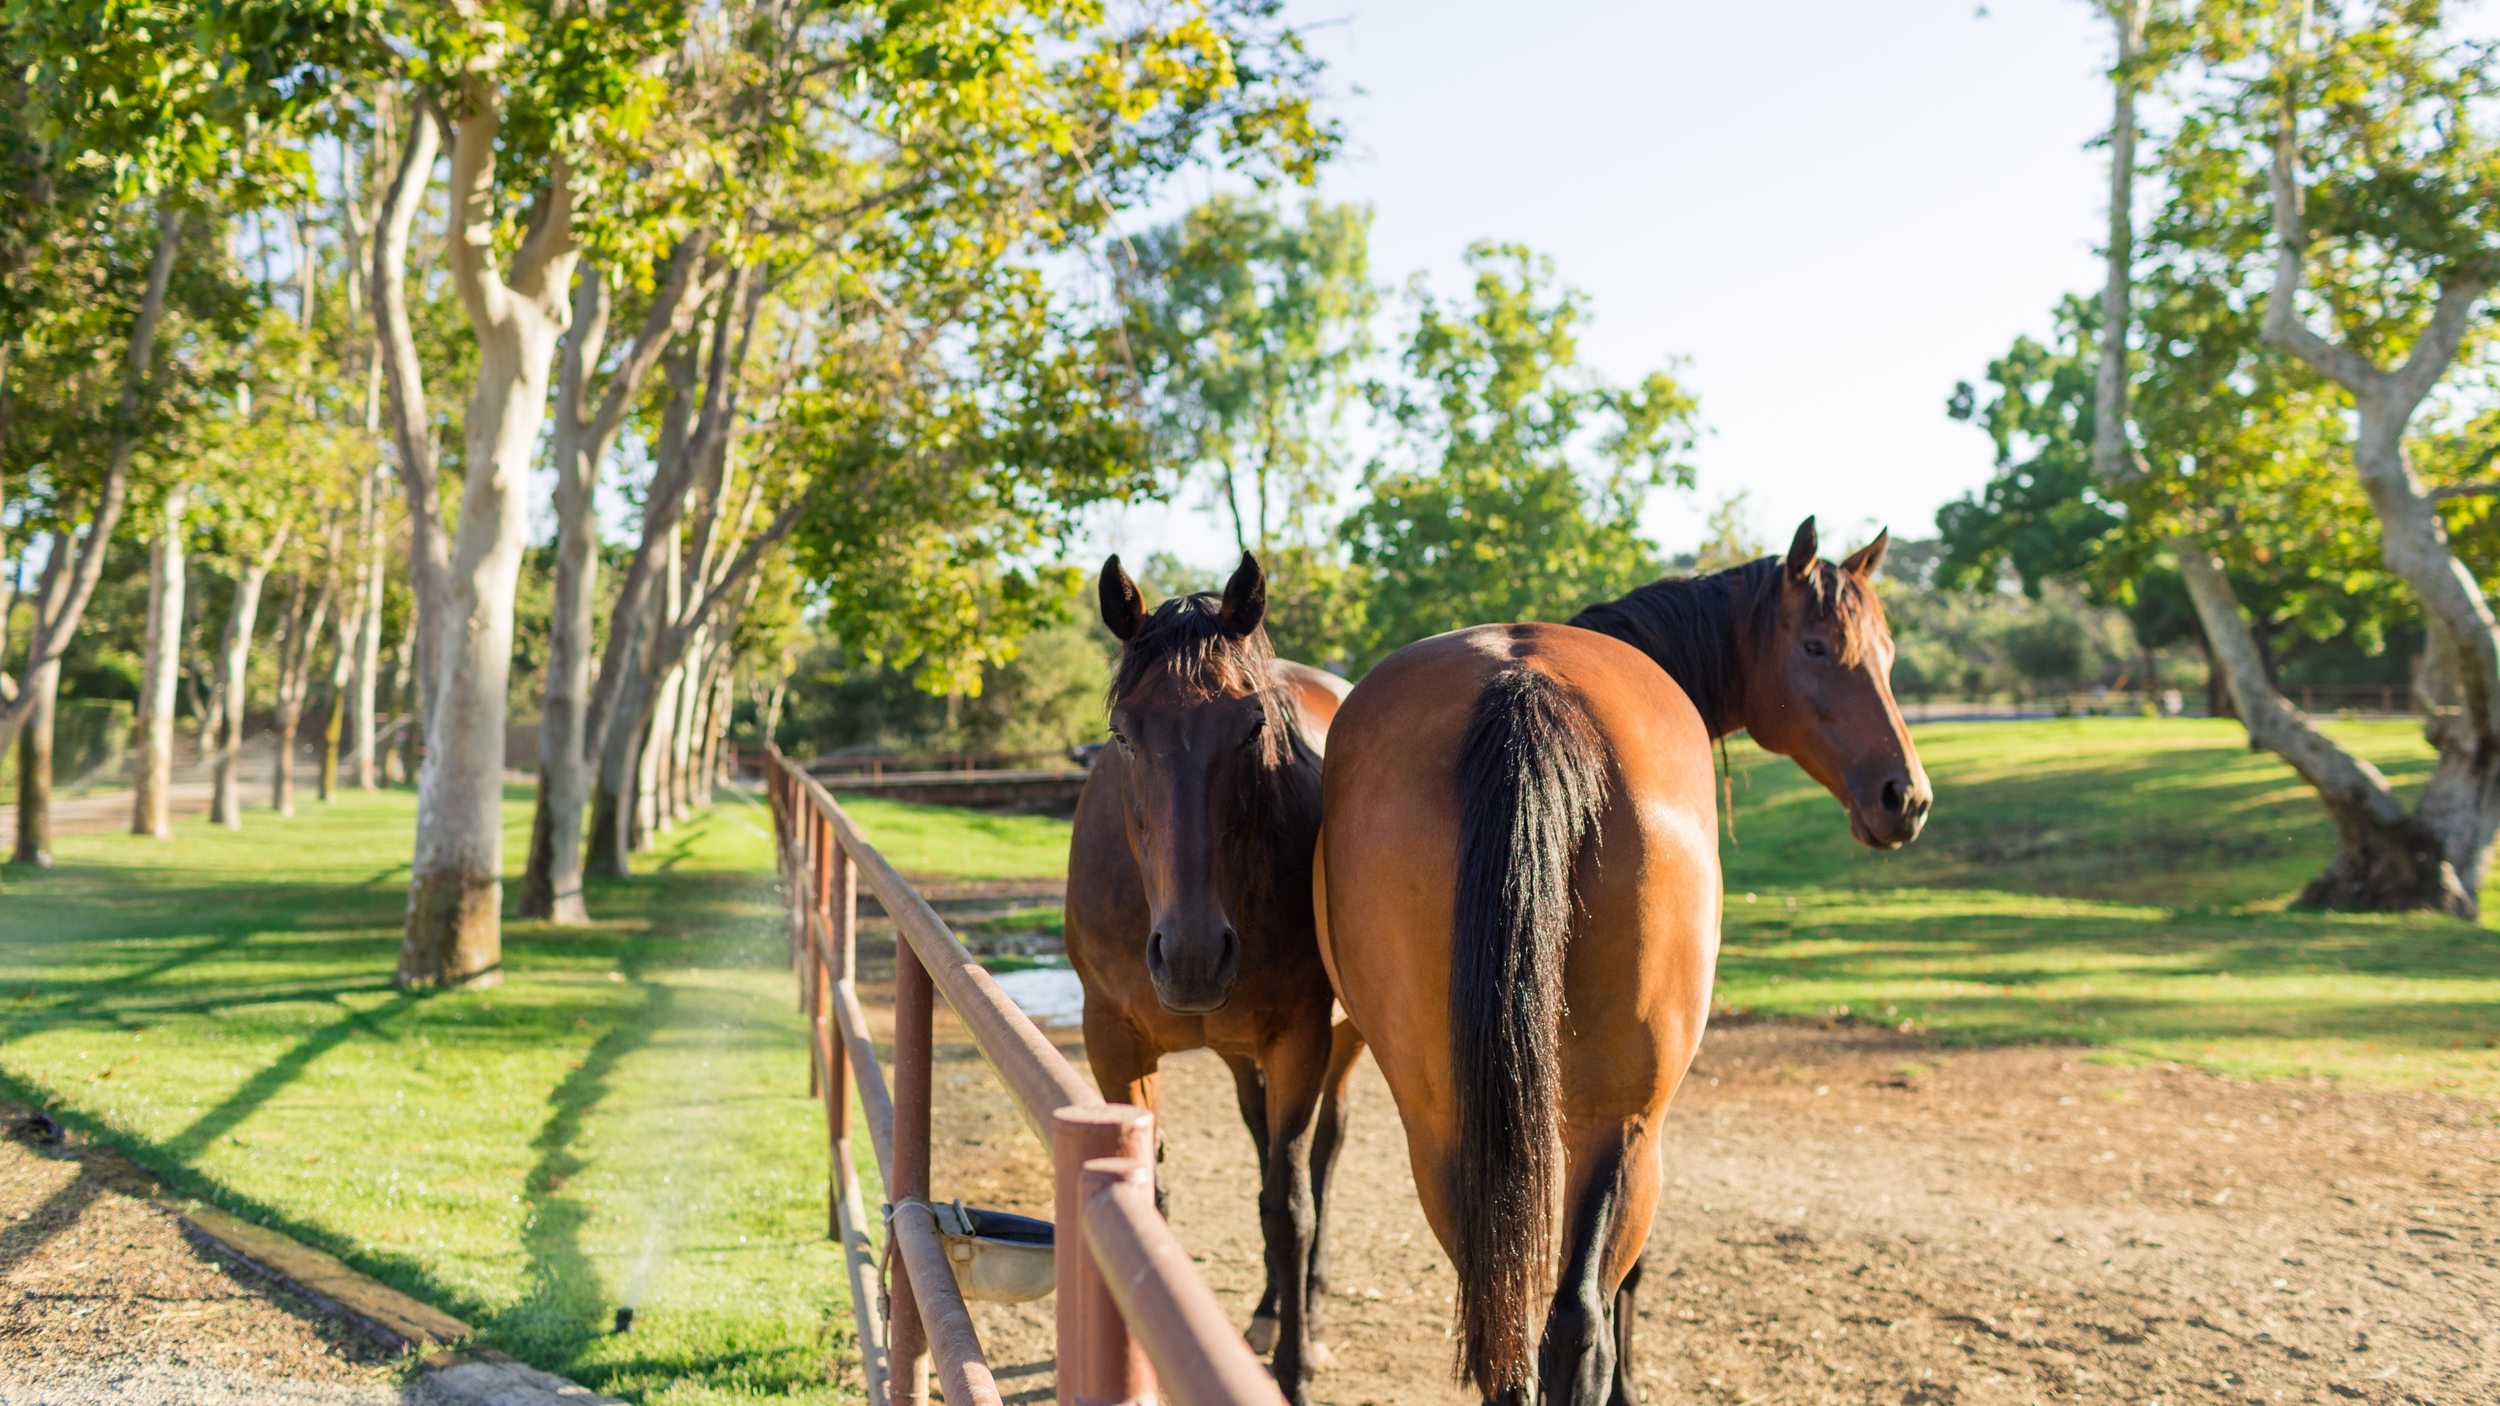 TRUSTED RESOURCES - At Alamo Pintado we research and utilize the best veterinary products and services available to help support your horse's health and recovery. These resources have our trust after years of results seen in clinical practice.